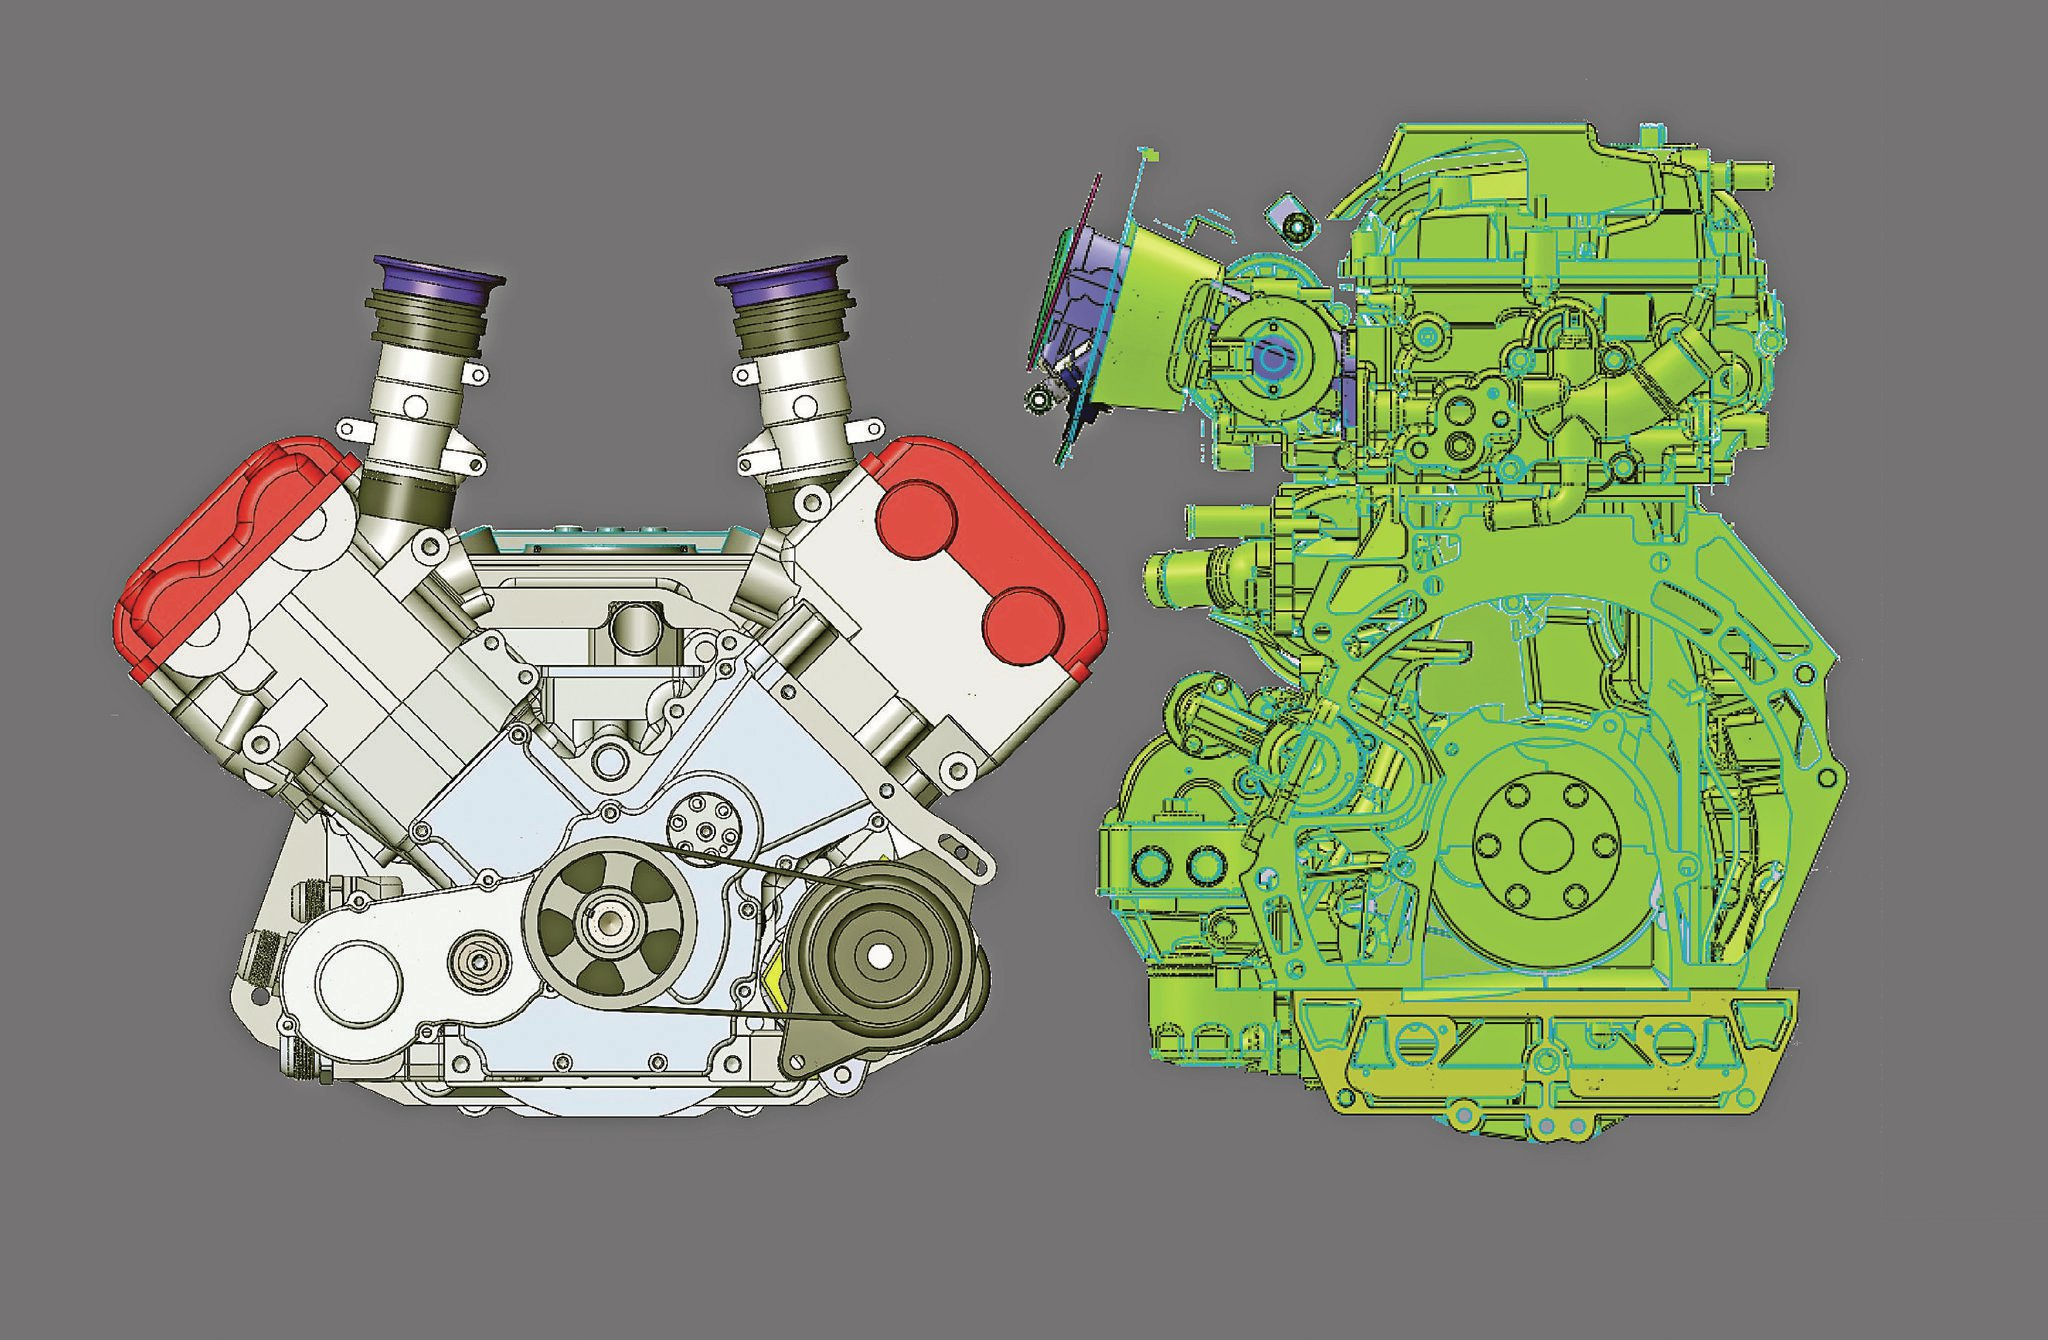 Currently under development by Hartley is the Bolt 8 V8, a new robust design for twin-turbo applications. It will displace 2.8 L and should make at least 650 hp. These engines could be available by early 2015. Note its compact dimensions compared to a 2.0L Ford Duratec L4.